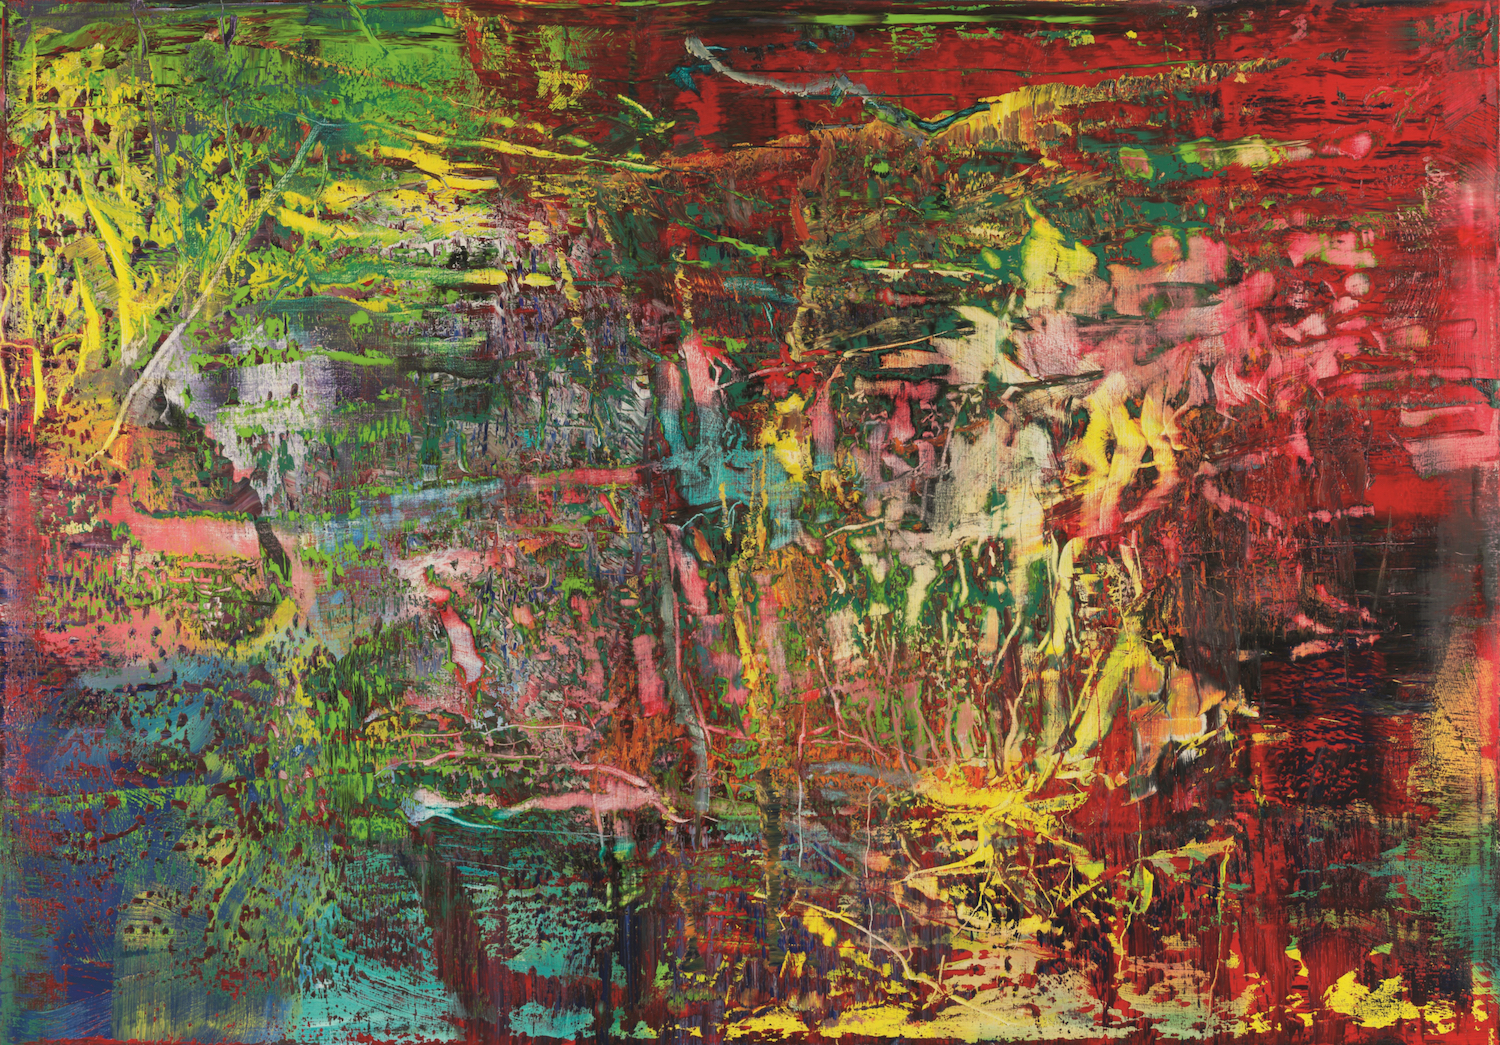 Steve Reich / Gerhard Richter - Wednesday 23 October, 7.30pm & 9.30pm, £21.50-£26.50 (<25s £10)Barbican Hall, Barbican CentreSteve Reich and Gerhard Richter – two giants of contemporary culture – come together in a major new collaboration: a cinematic exploration of Richter's intense, abstract painting 946-3 (pictured). Through a combination of music and digital visuals, algorithmically derived from the art, this event promises an artwork that's more than the sum of its parts. Very excitingly, Steve Reich will be in London for this European premiere! Unsurprisingly, the early showing is sold out so be quick if you want a ticket… 🏃♀️